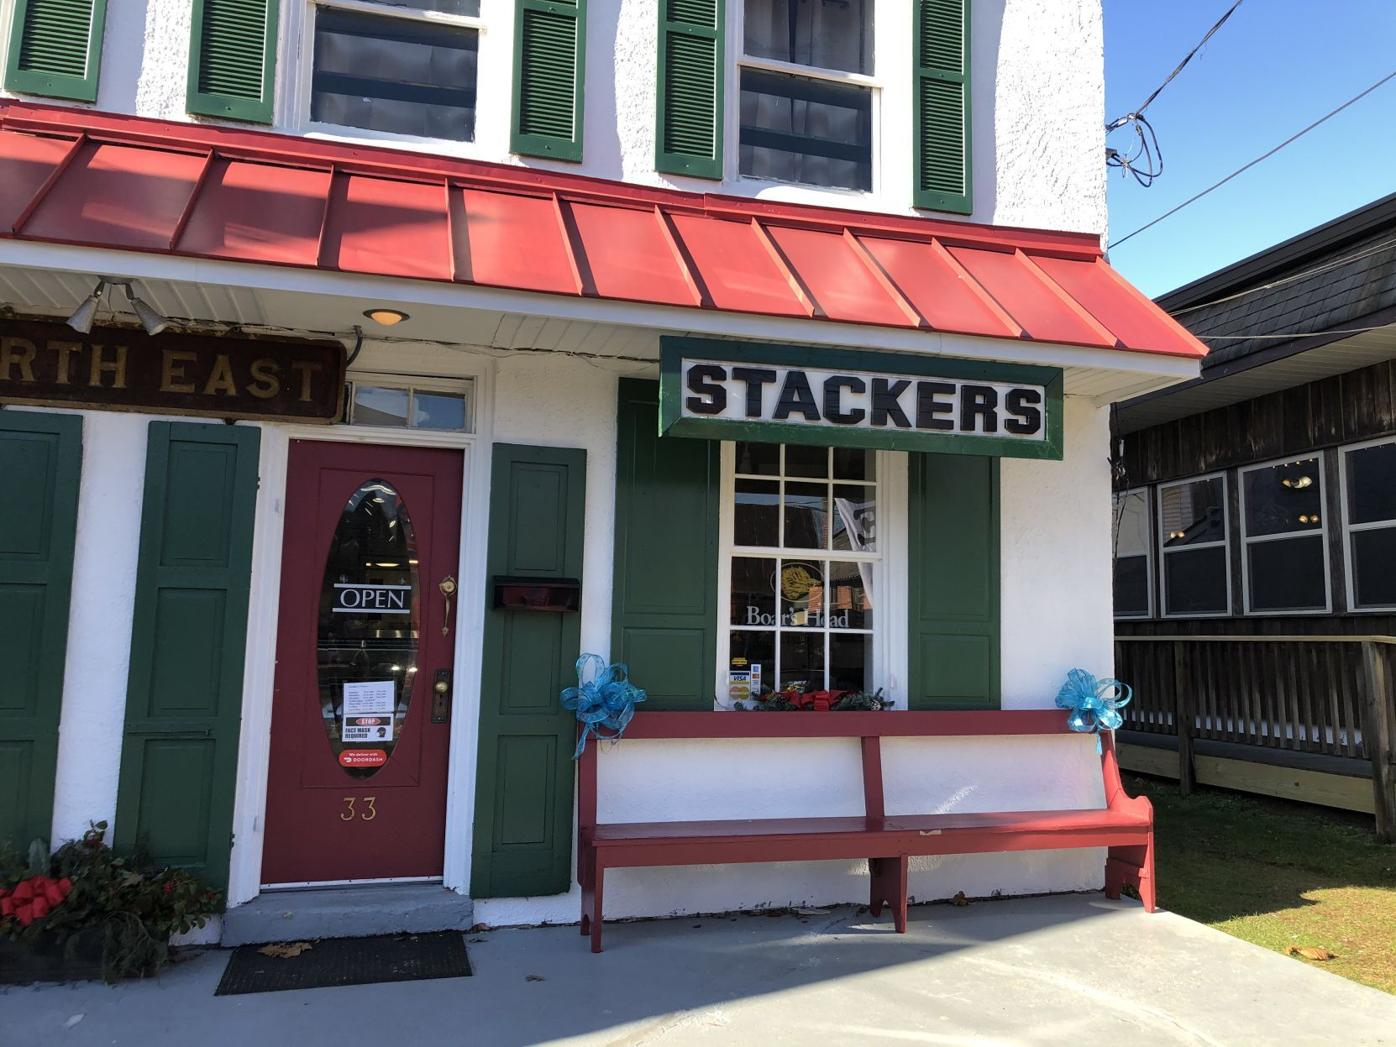 Stacker's offers drool-worthy take-out